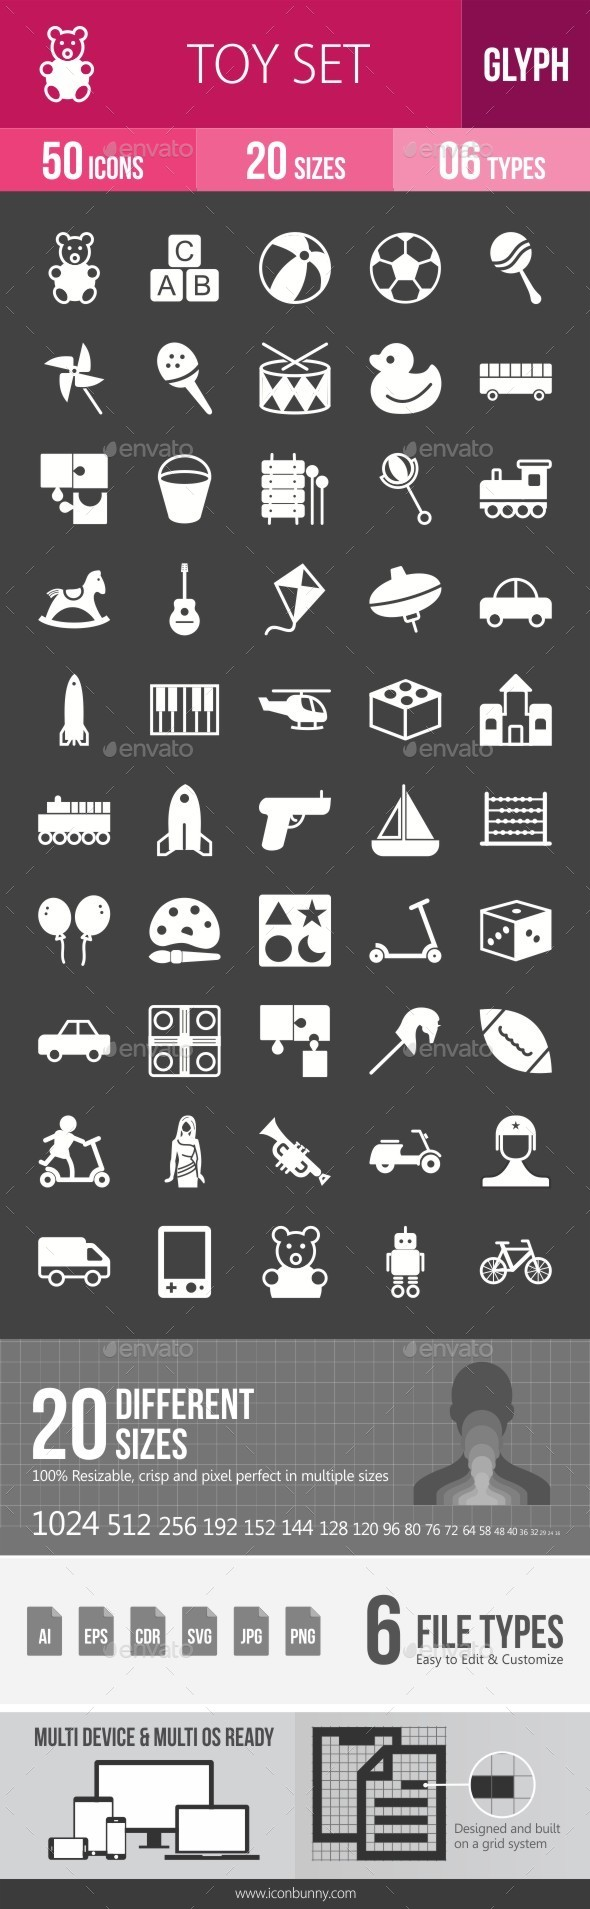 Toys Glyph Inverted Icons - Icons